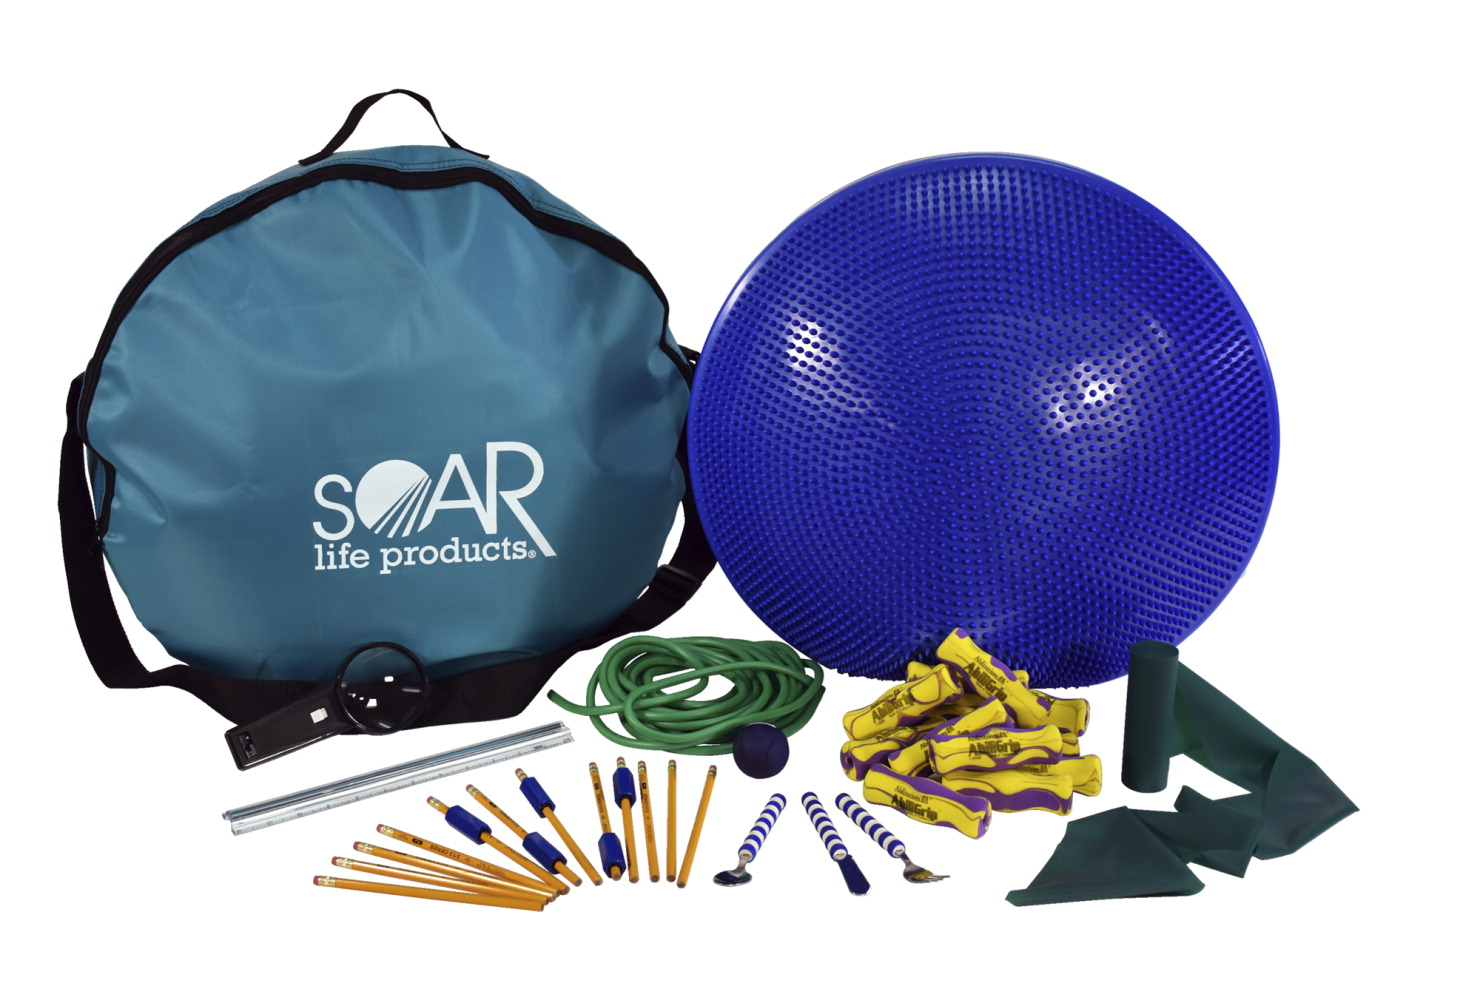 SOAR Life Products Adult Functional Mobile Therapy Kit